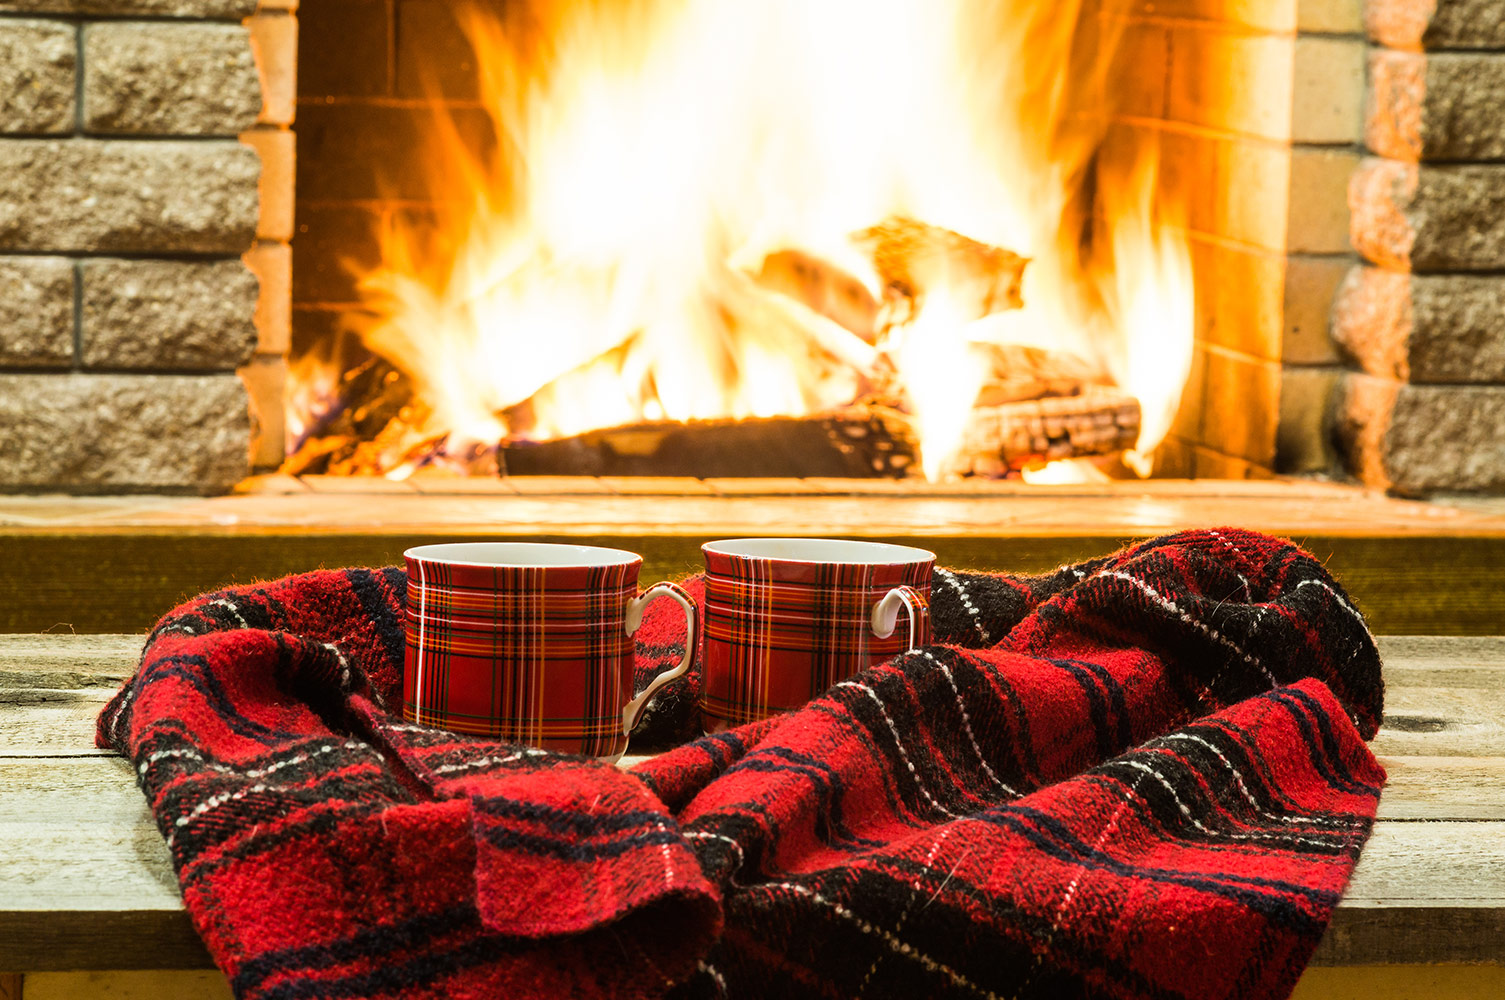 Cozy Fireplace with Mugs